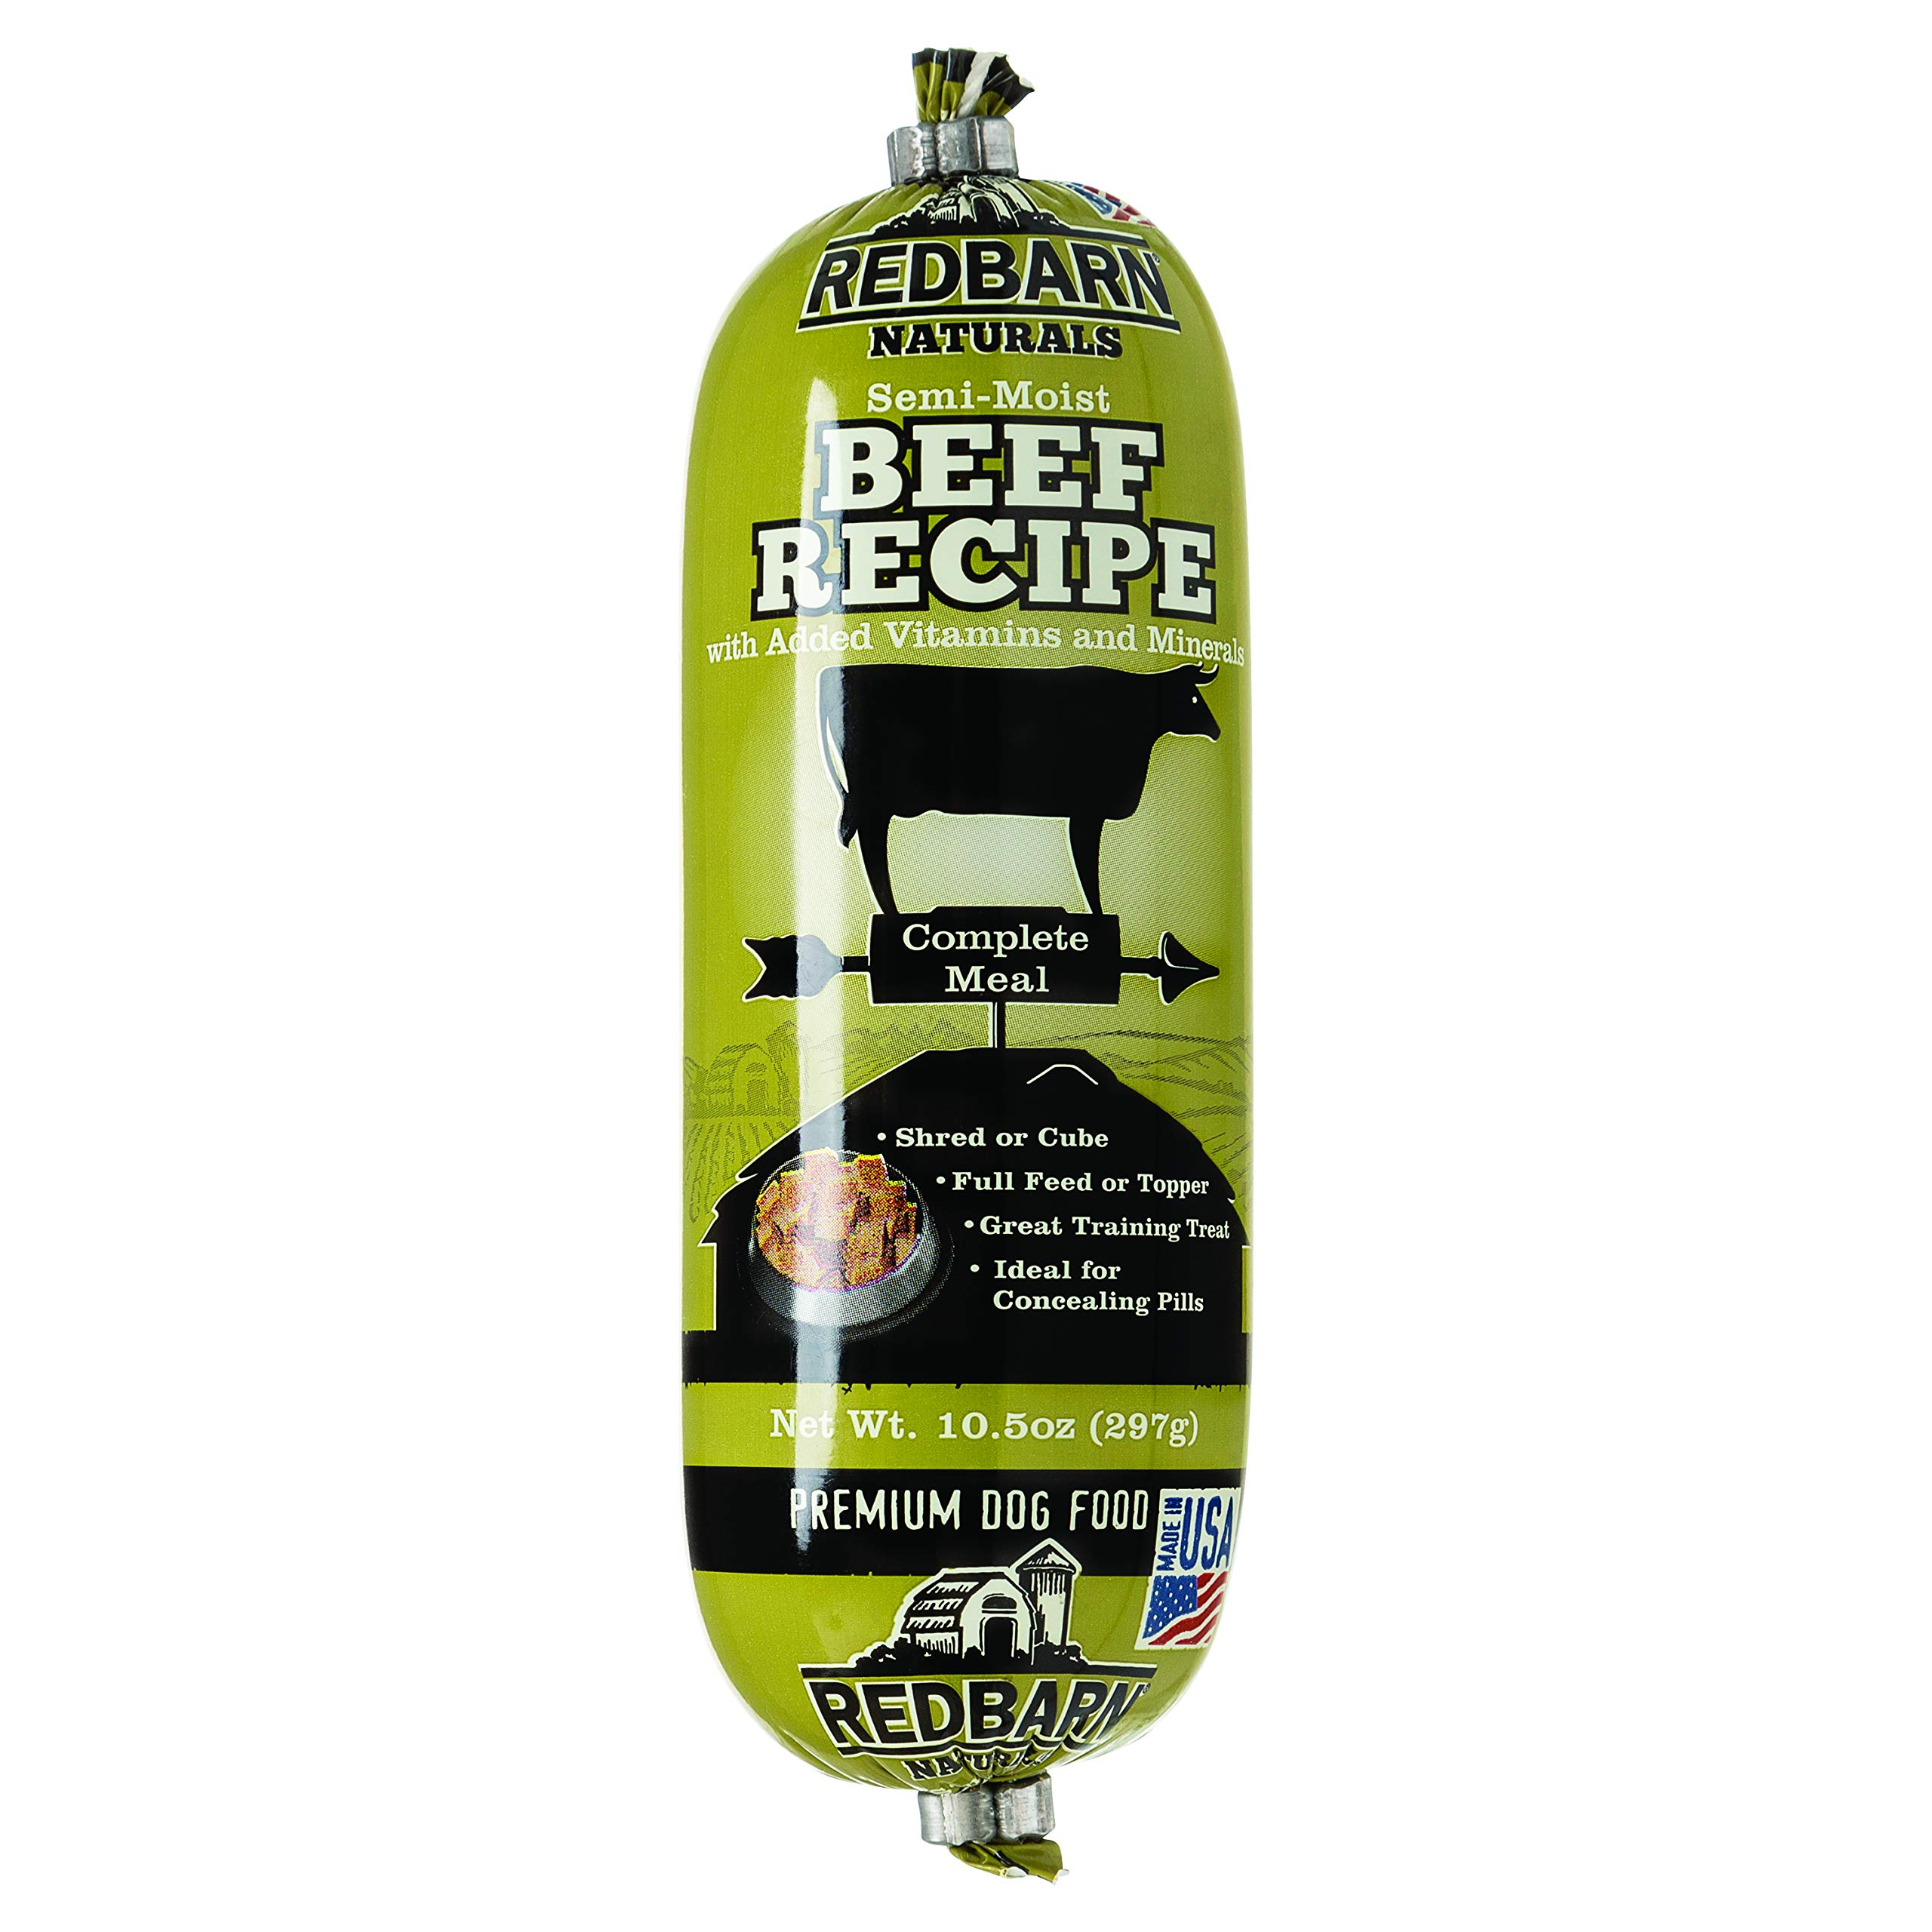 Redbarn Beef Dog Food Roll, Naturals, 10.5 Ounce, 15 Pack by Redbarn Pet Products